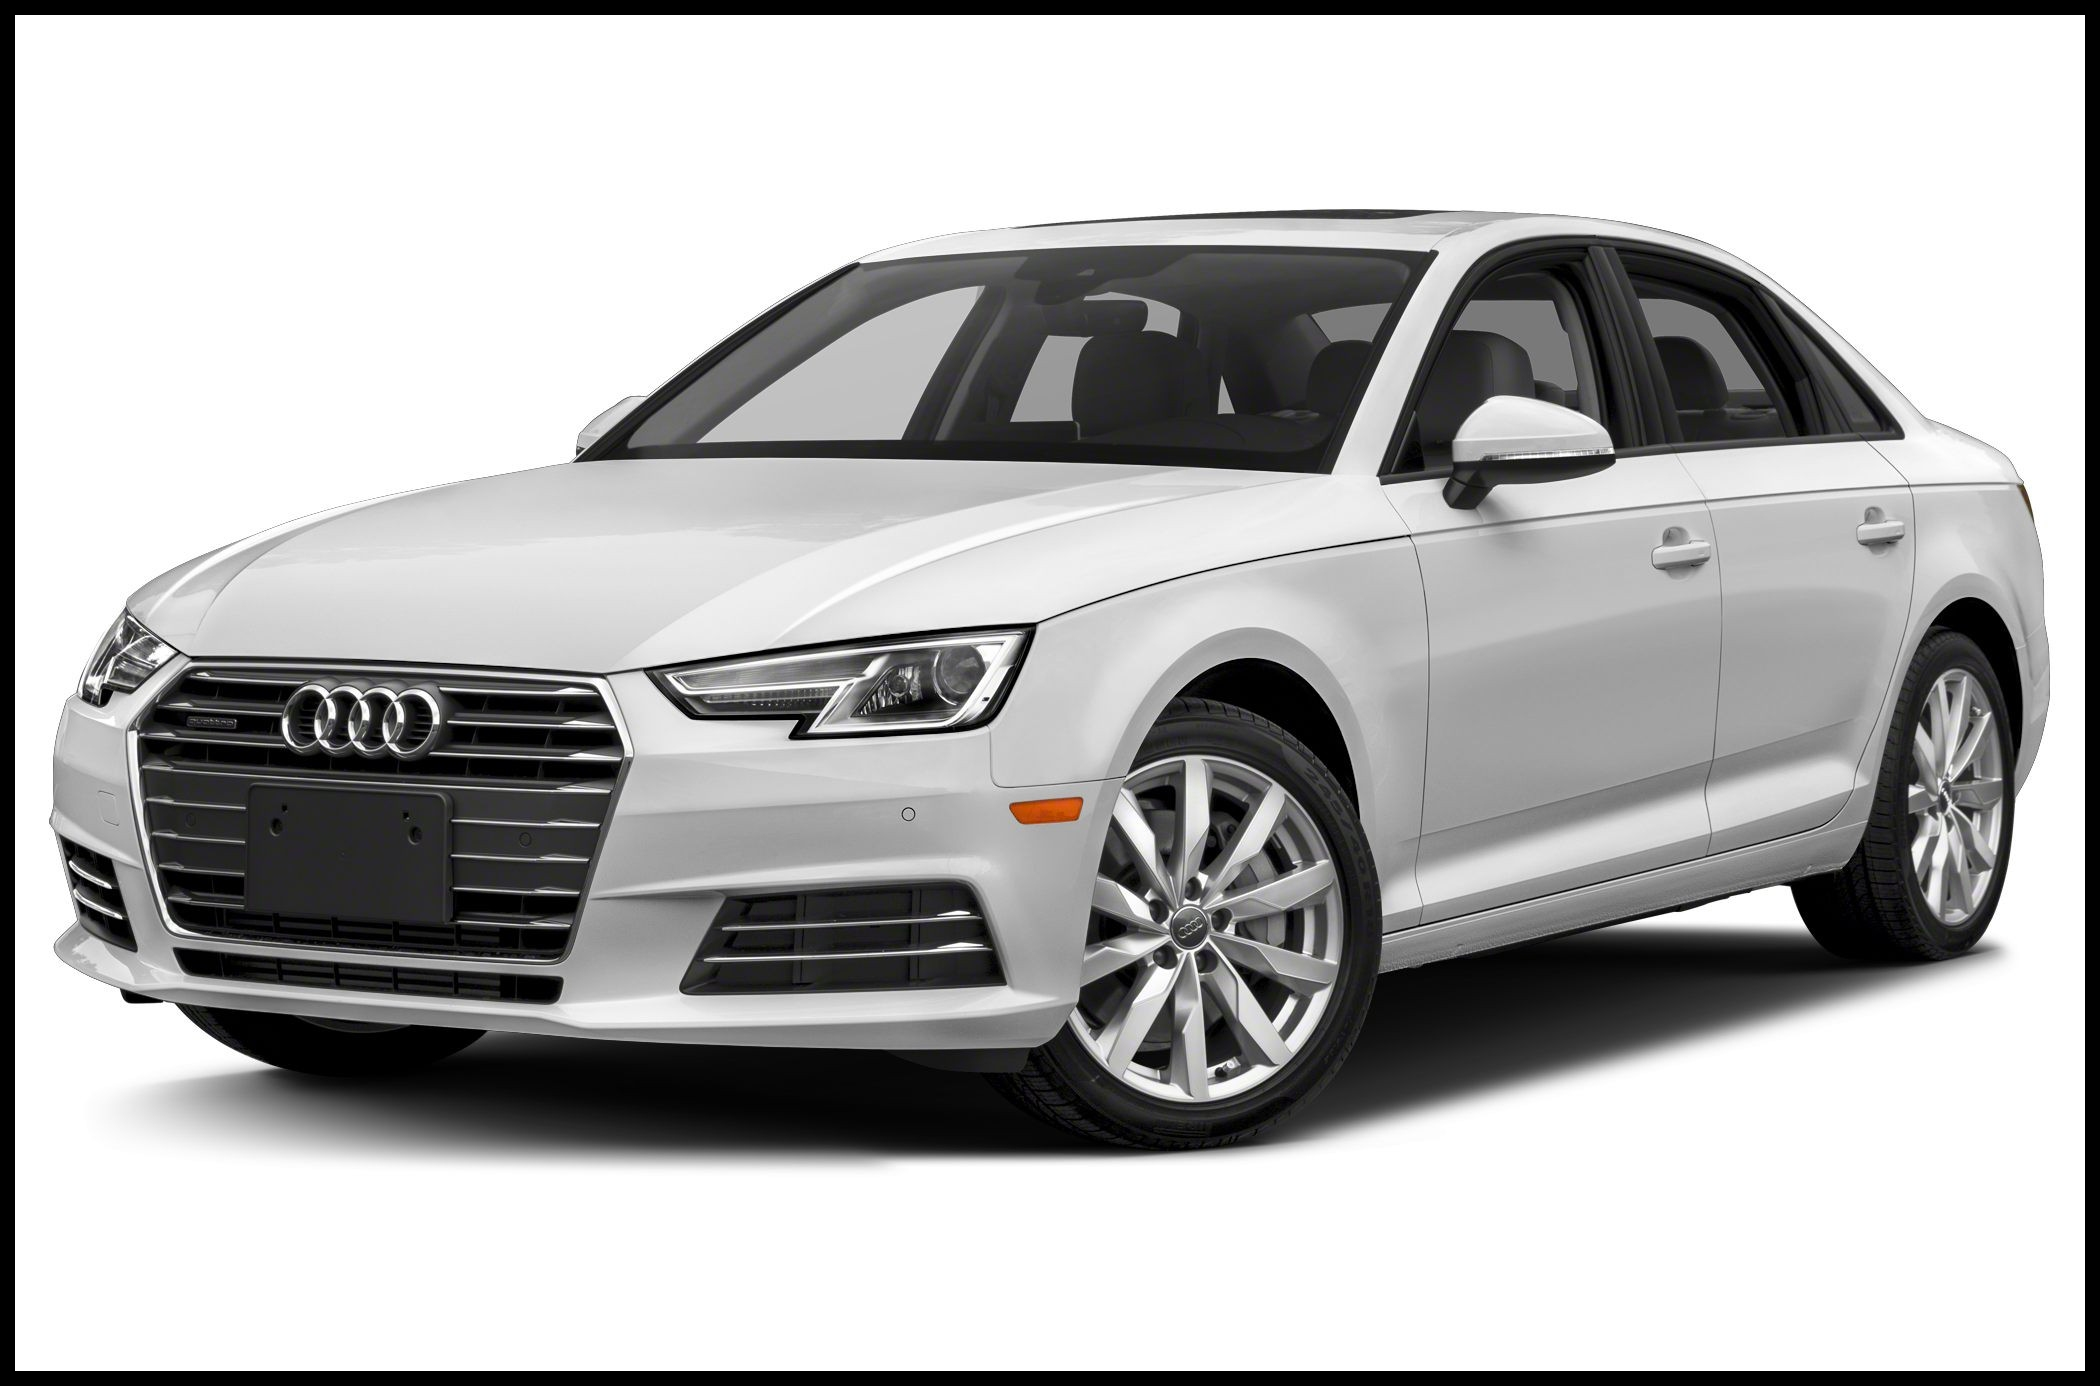 2018 Audi A4 Premium Plus Price Beautiful 2018 Audi A4 Information